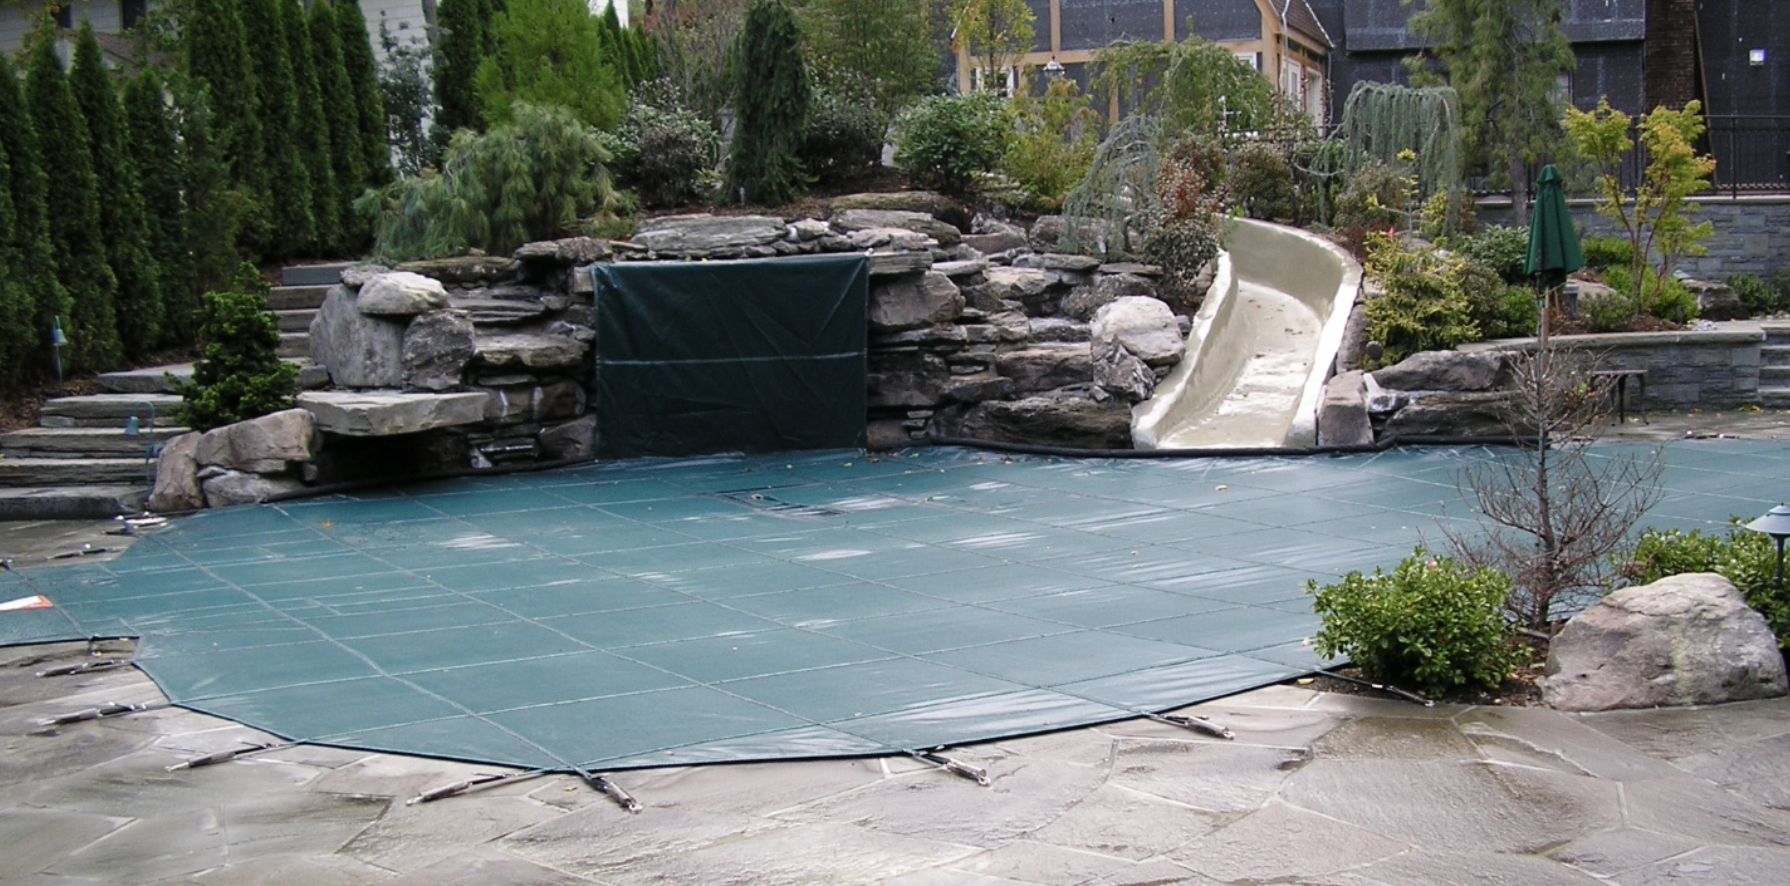 meyco cover, rugged mesh pool cover, mesh pool safety cover